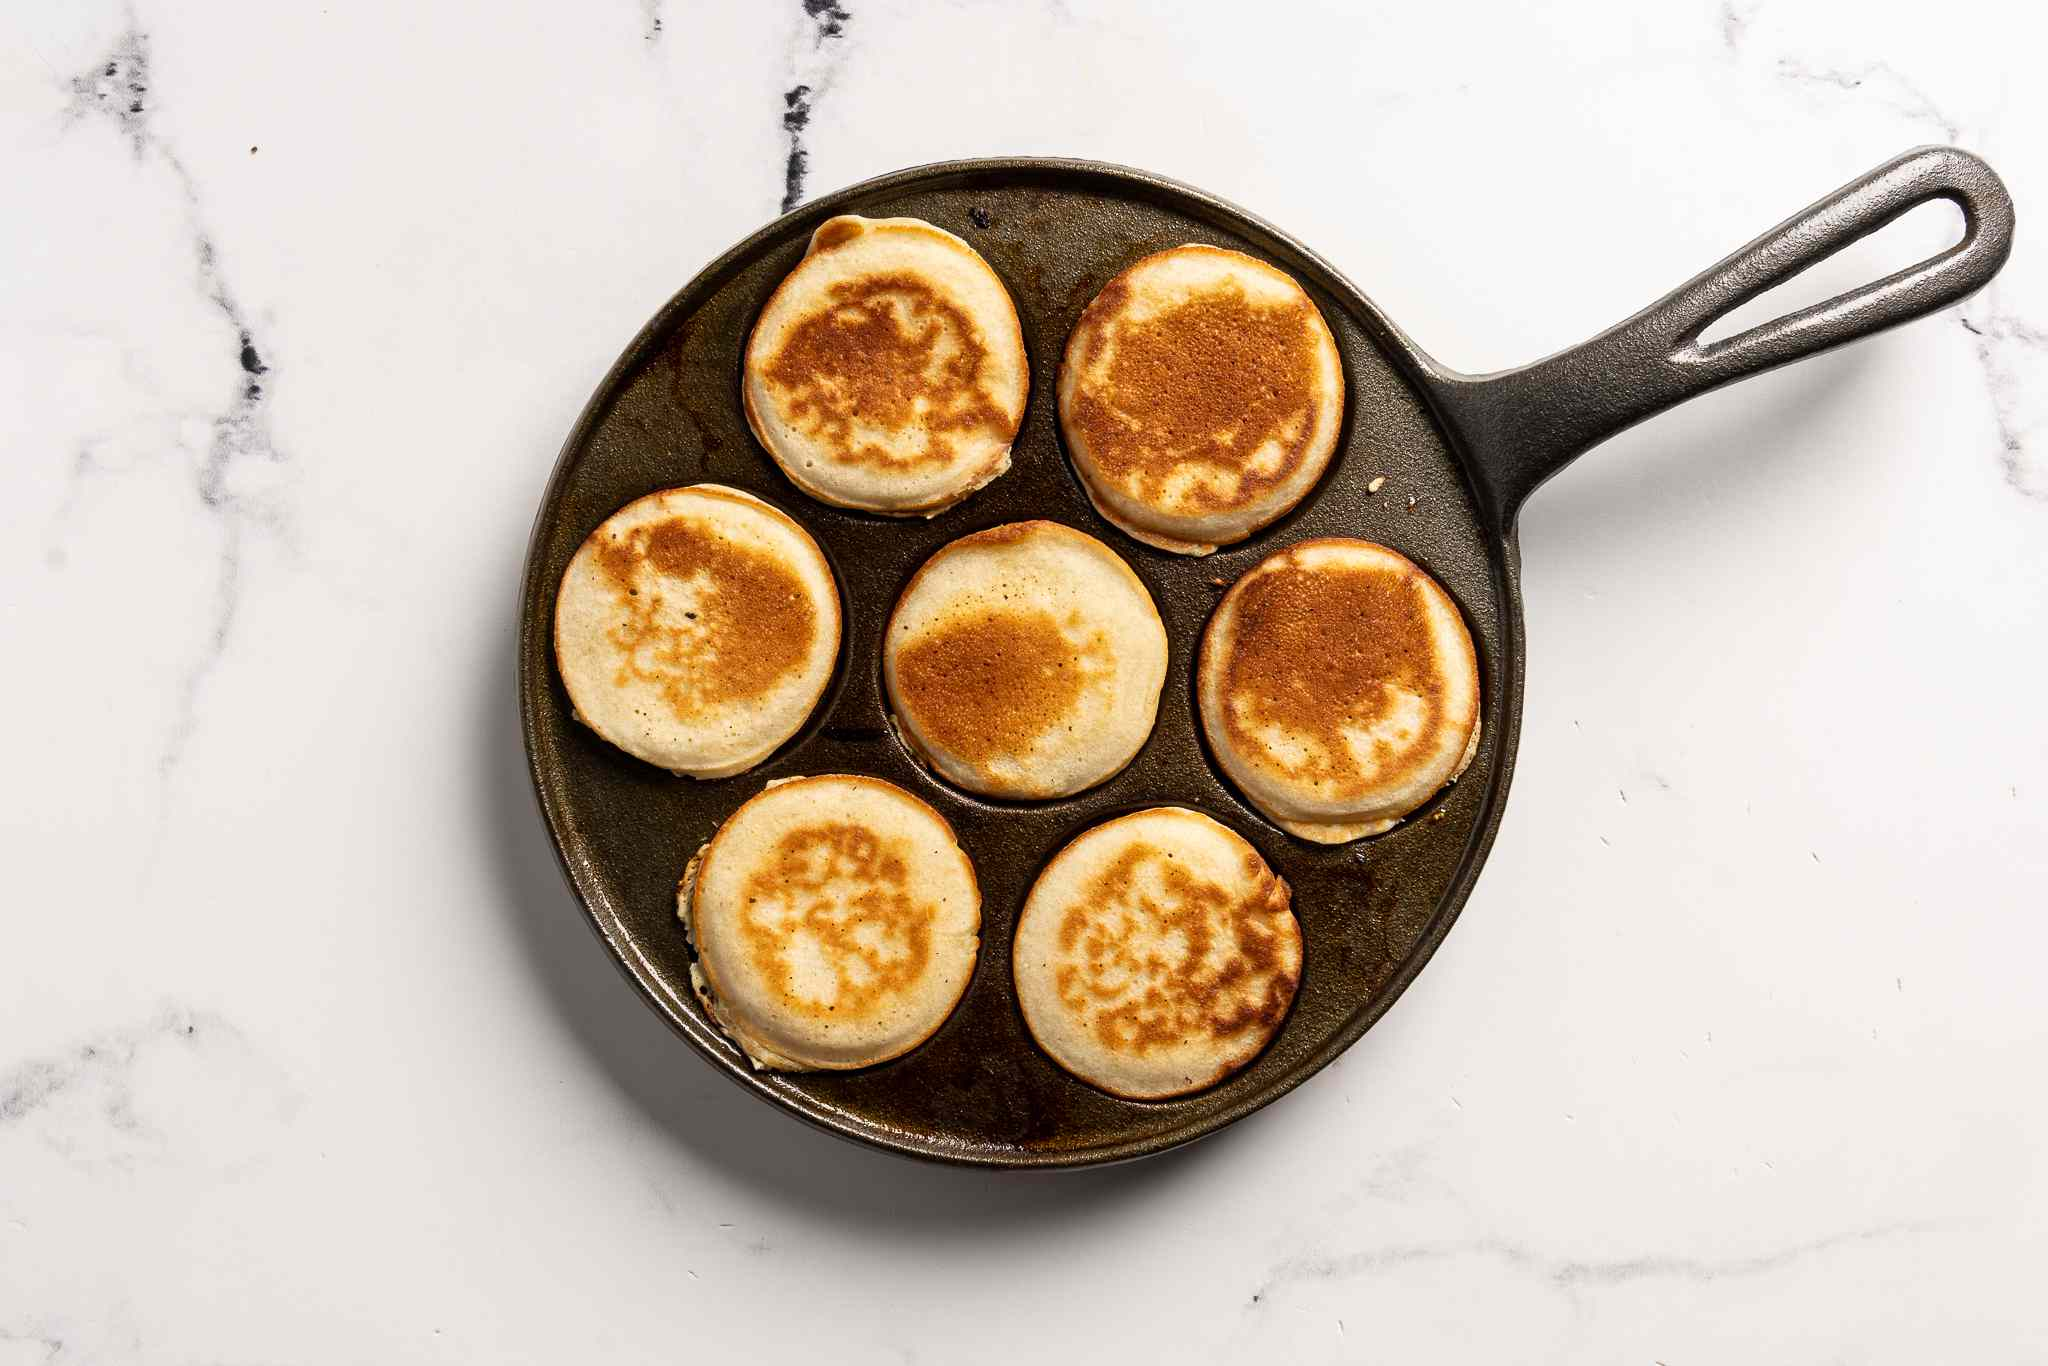 Cooked silver dollar pancakes